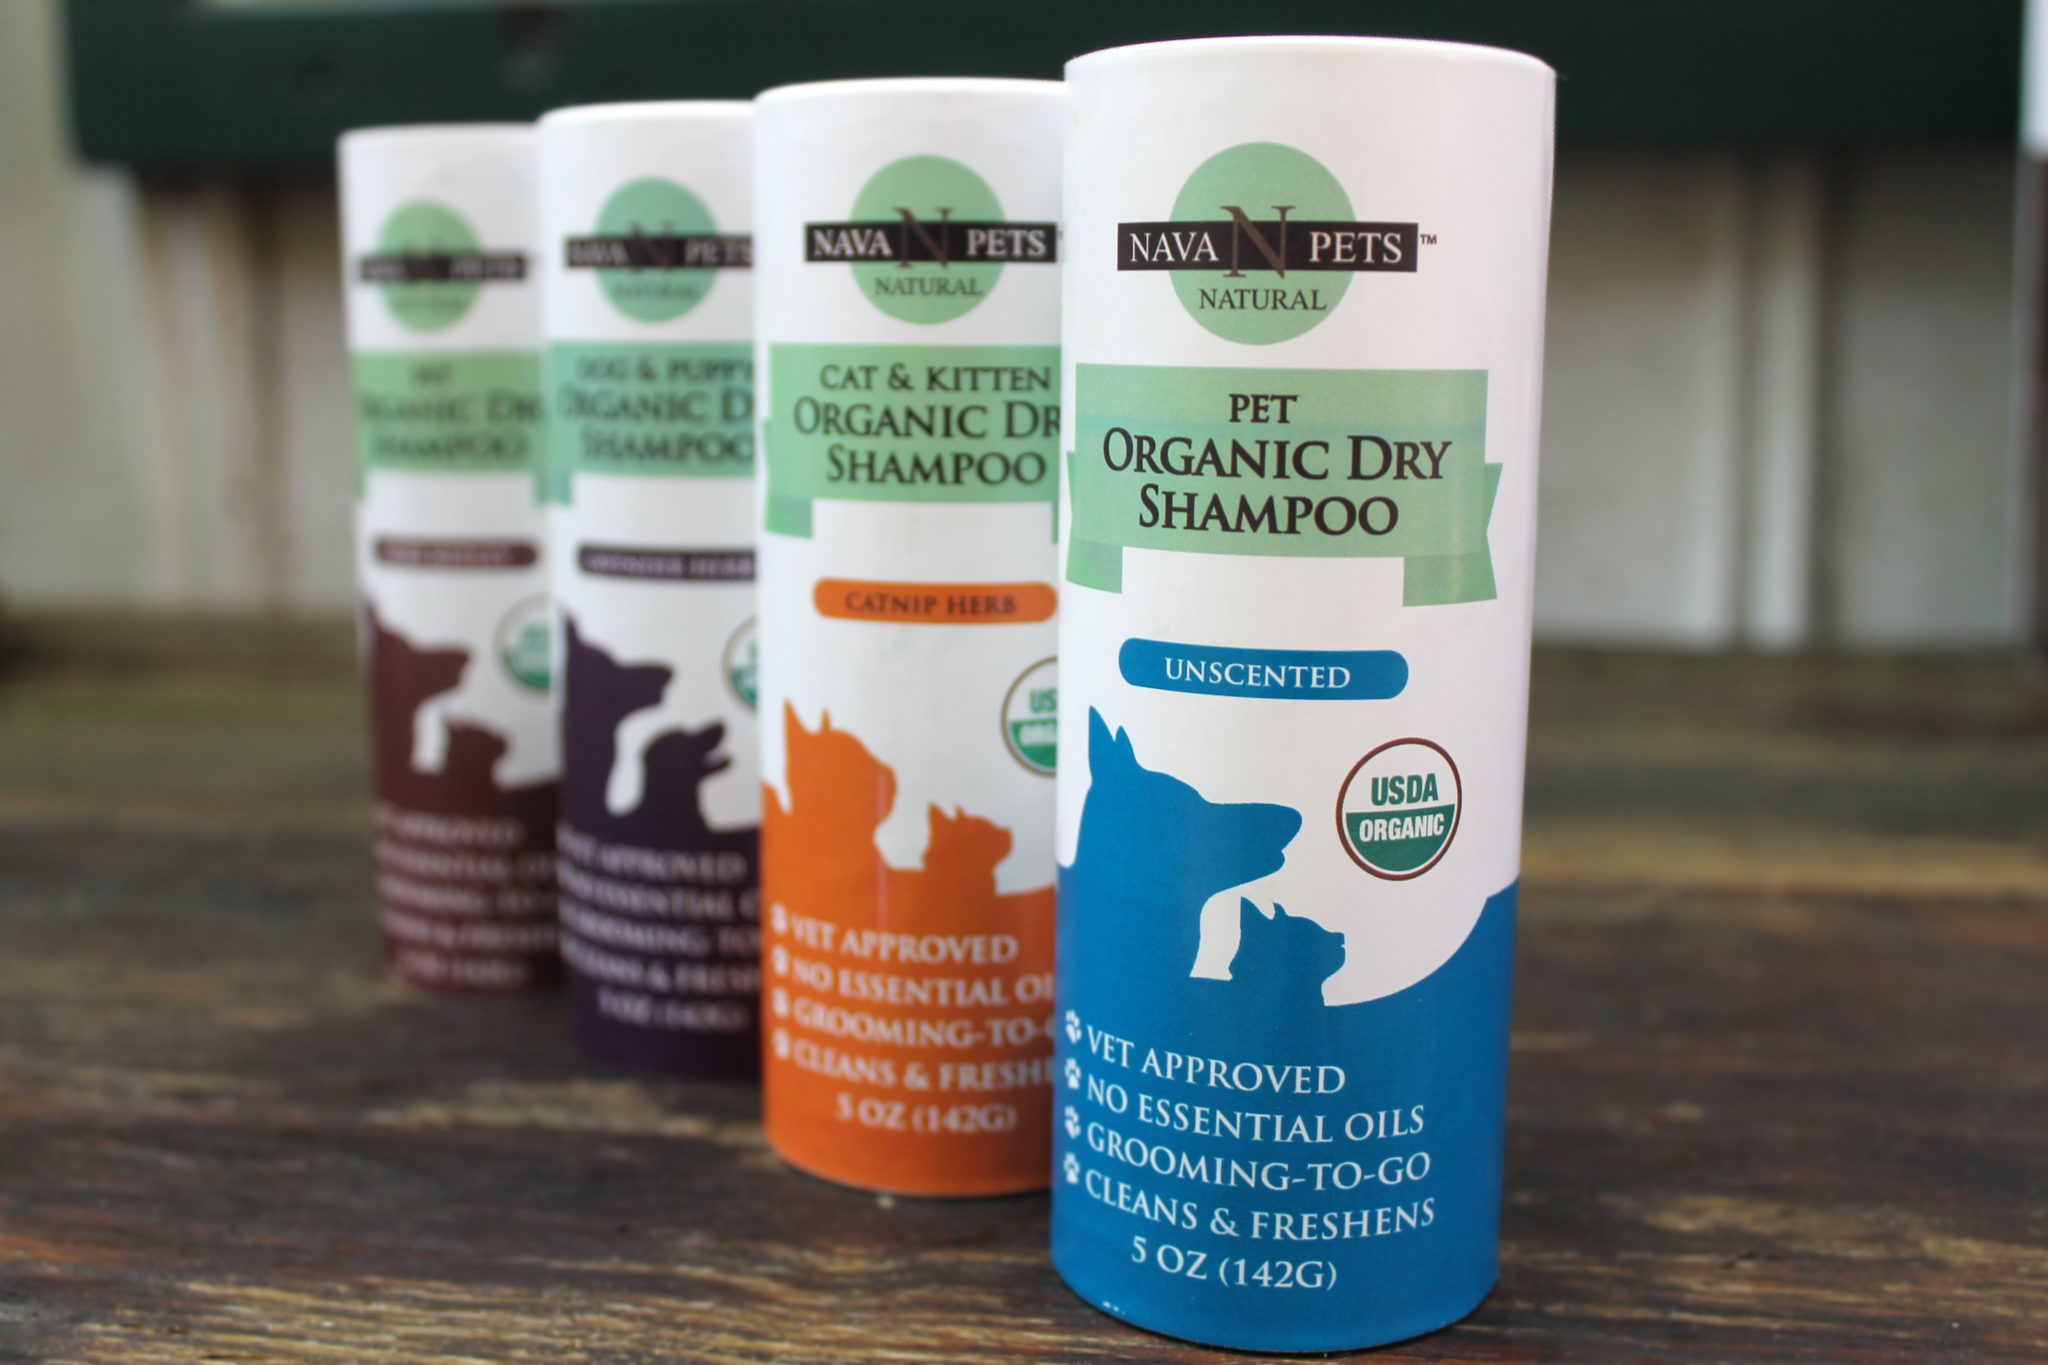 After nearly dying, women starts organic pet care company